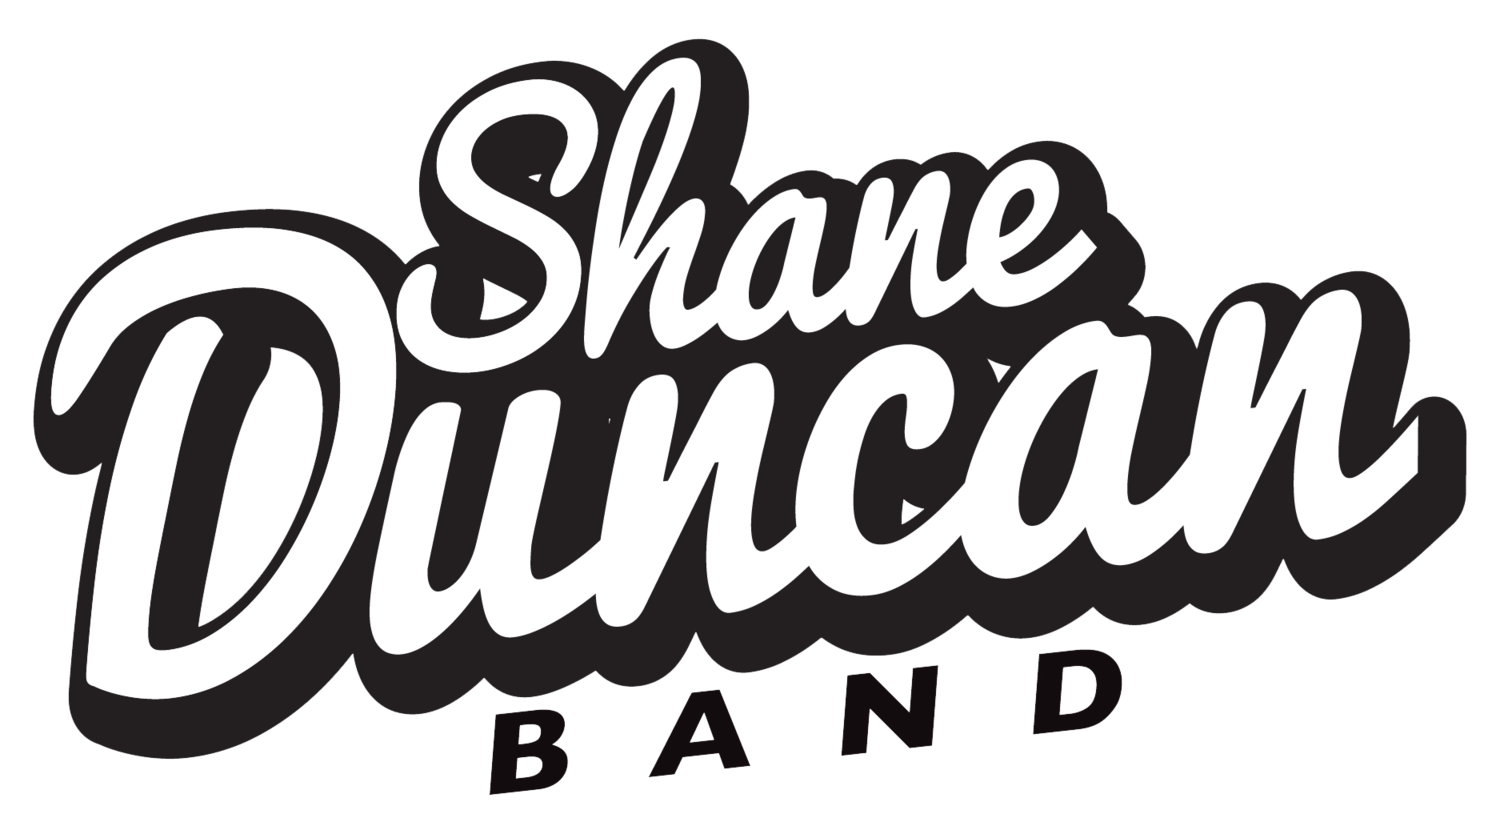 The Shane Duncan Band